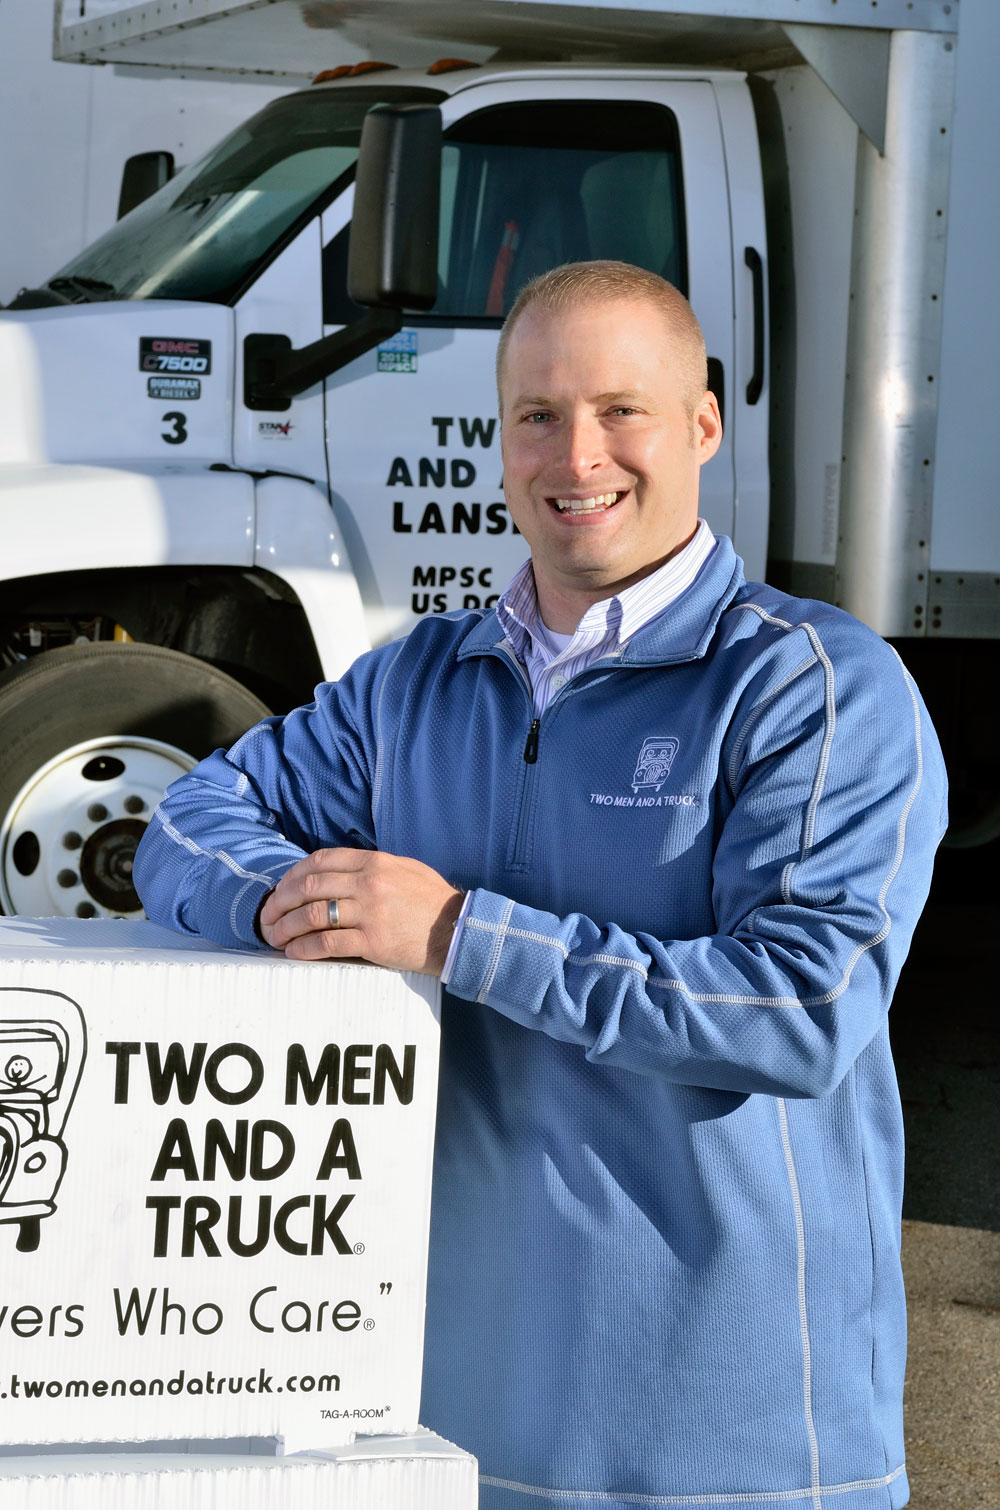 TWO MEN AND A TRUCK President Randy Shacka